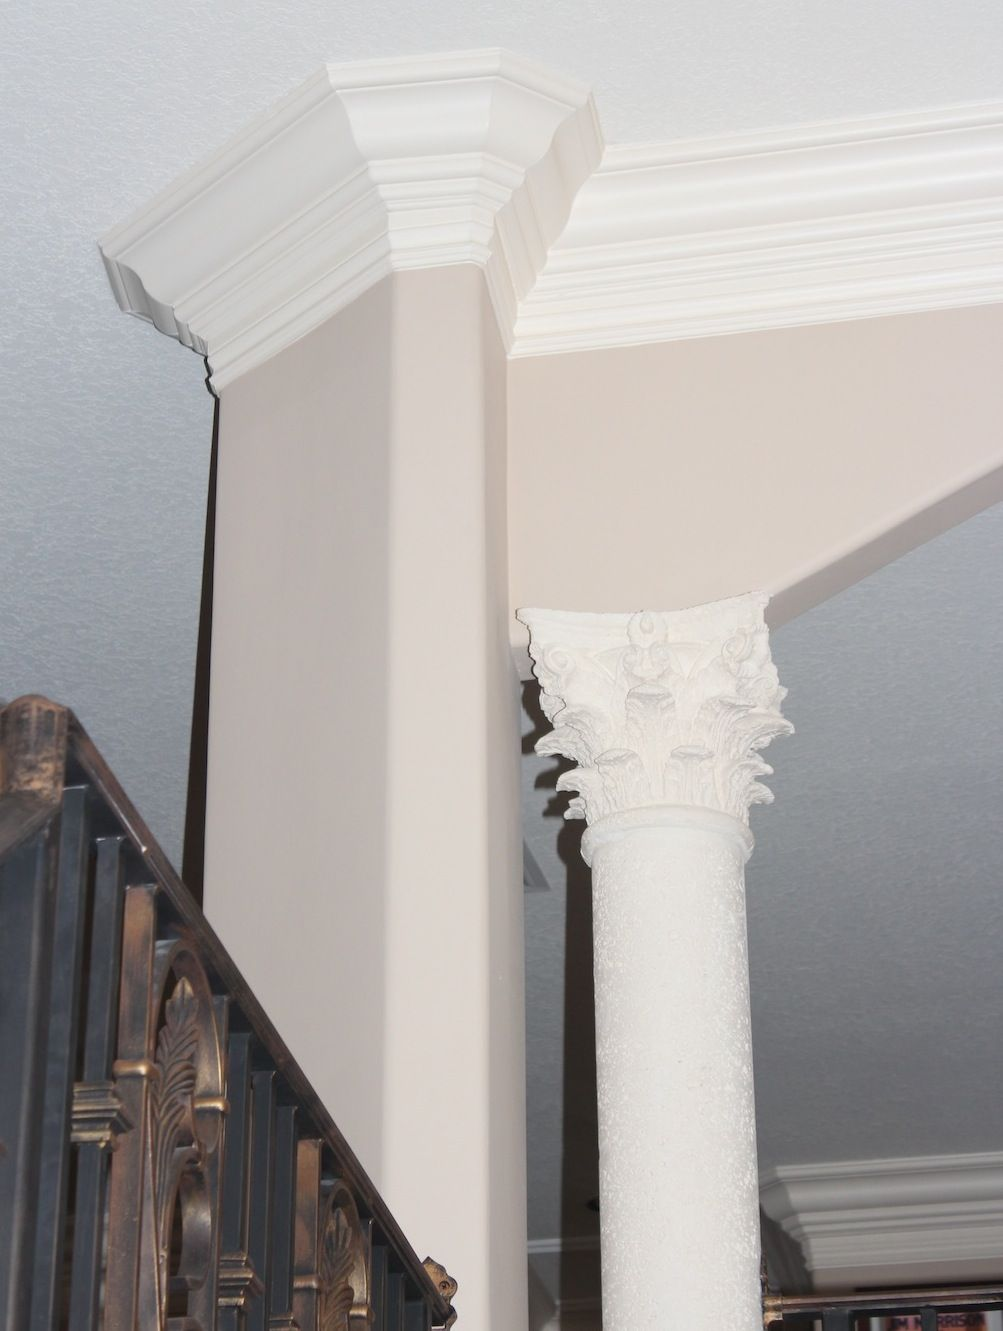 Best Double Crown Molding Iron Handrail And Corinthian Column 640 x 480